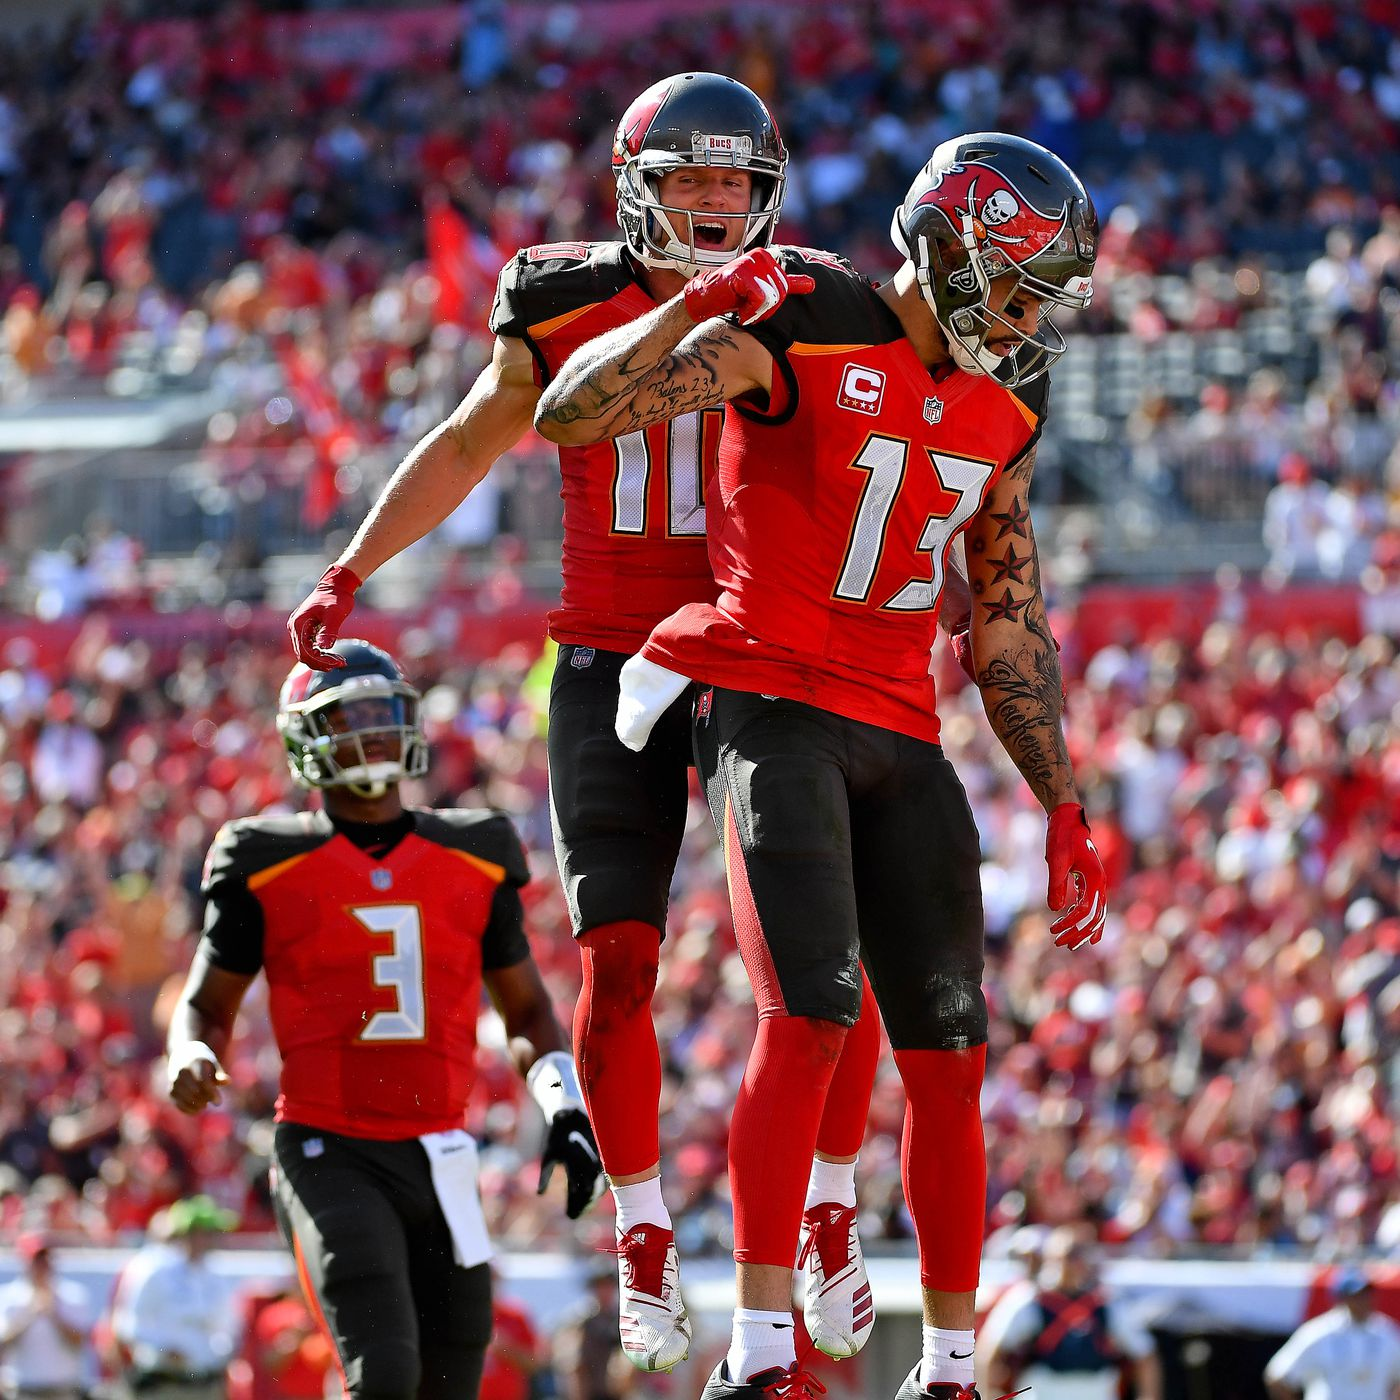 mike evans restructures contract helps bucs save 3 2 million in cap space bucs nation mike evans restructures contract helps